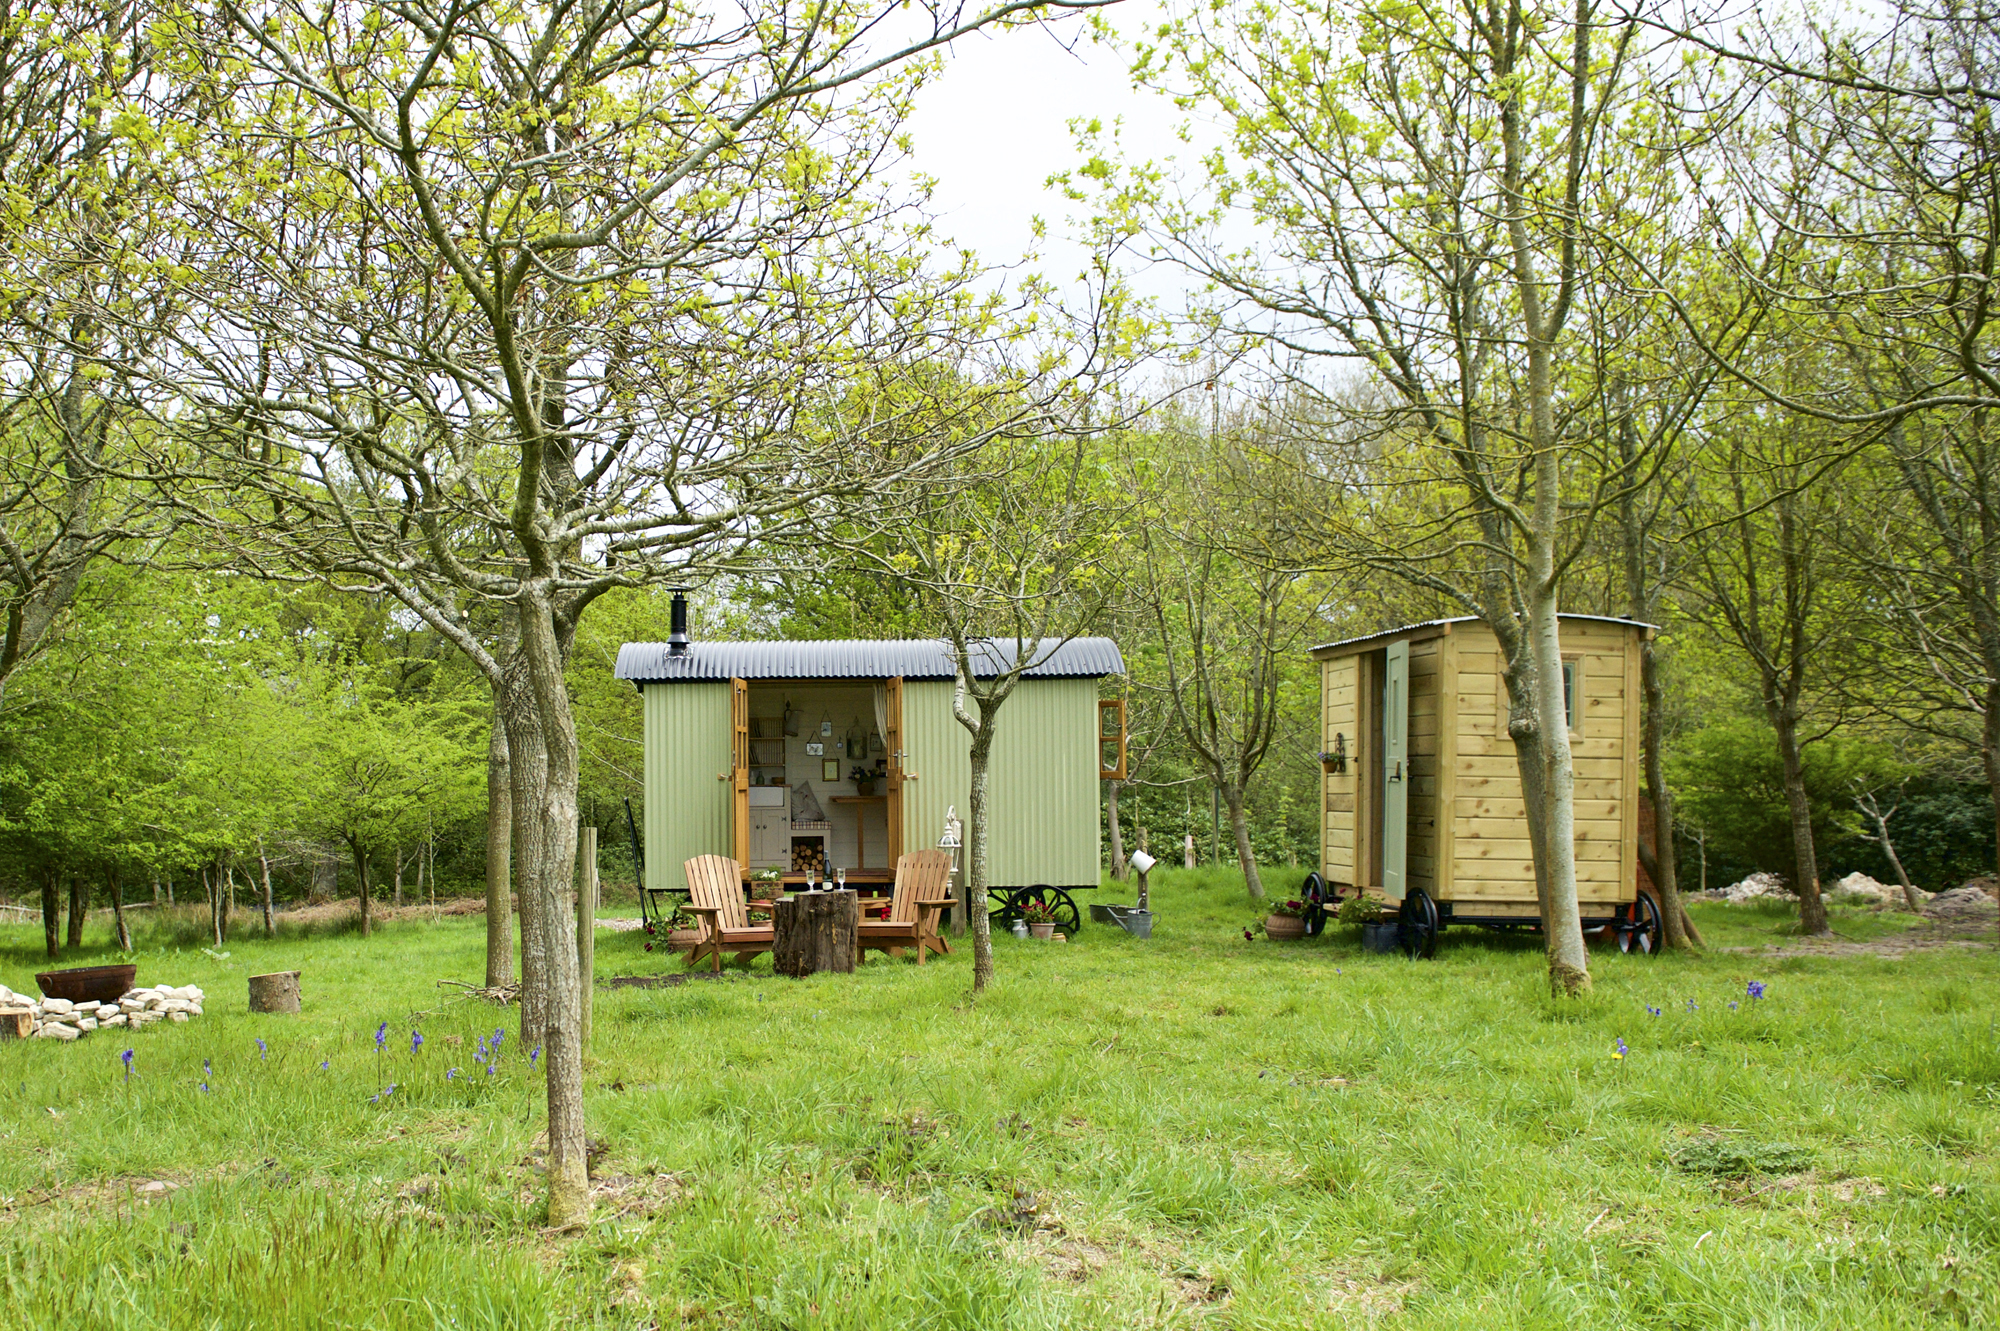 Luxury, Dorset, glamping, house, cottage, cottages, shepherd hut, shepherds hut, shepherds huts, shepherd huts, south west, south, west, hardy, country, Warmwell, Dorchester